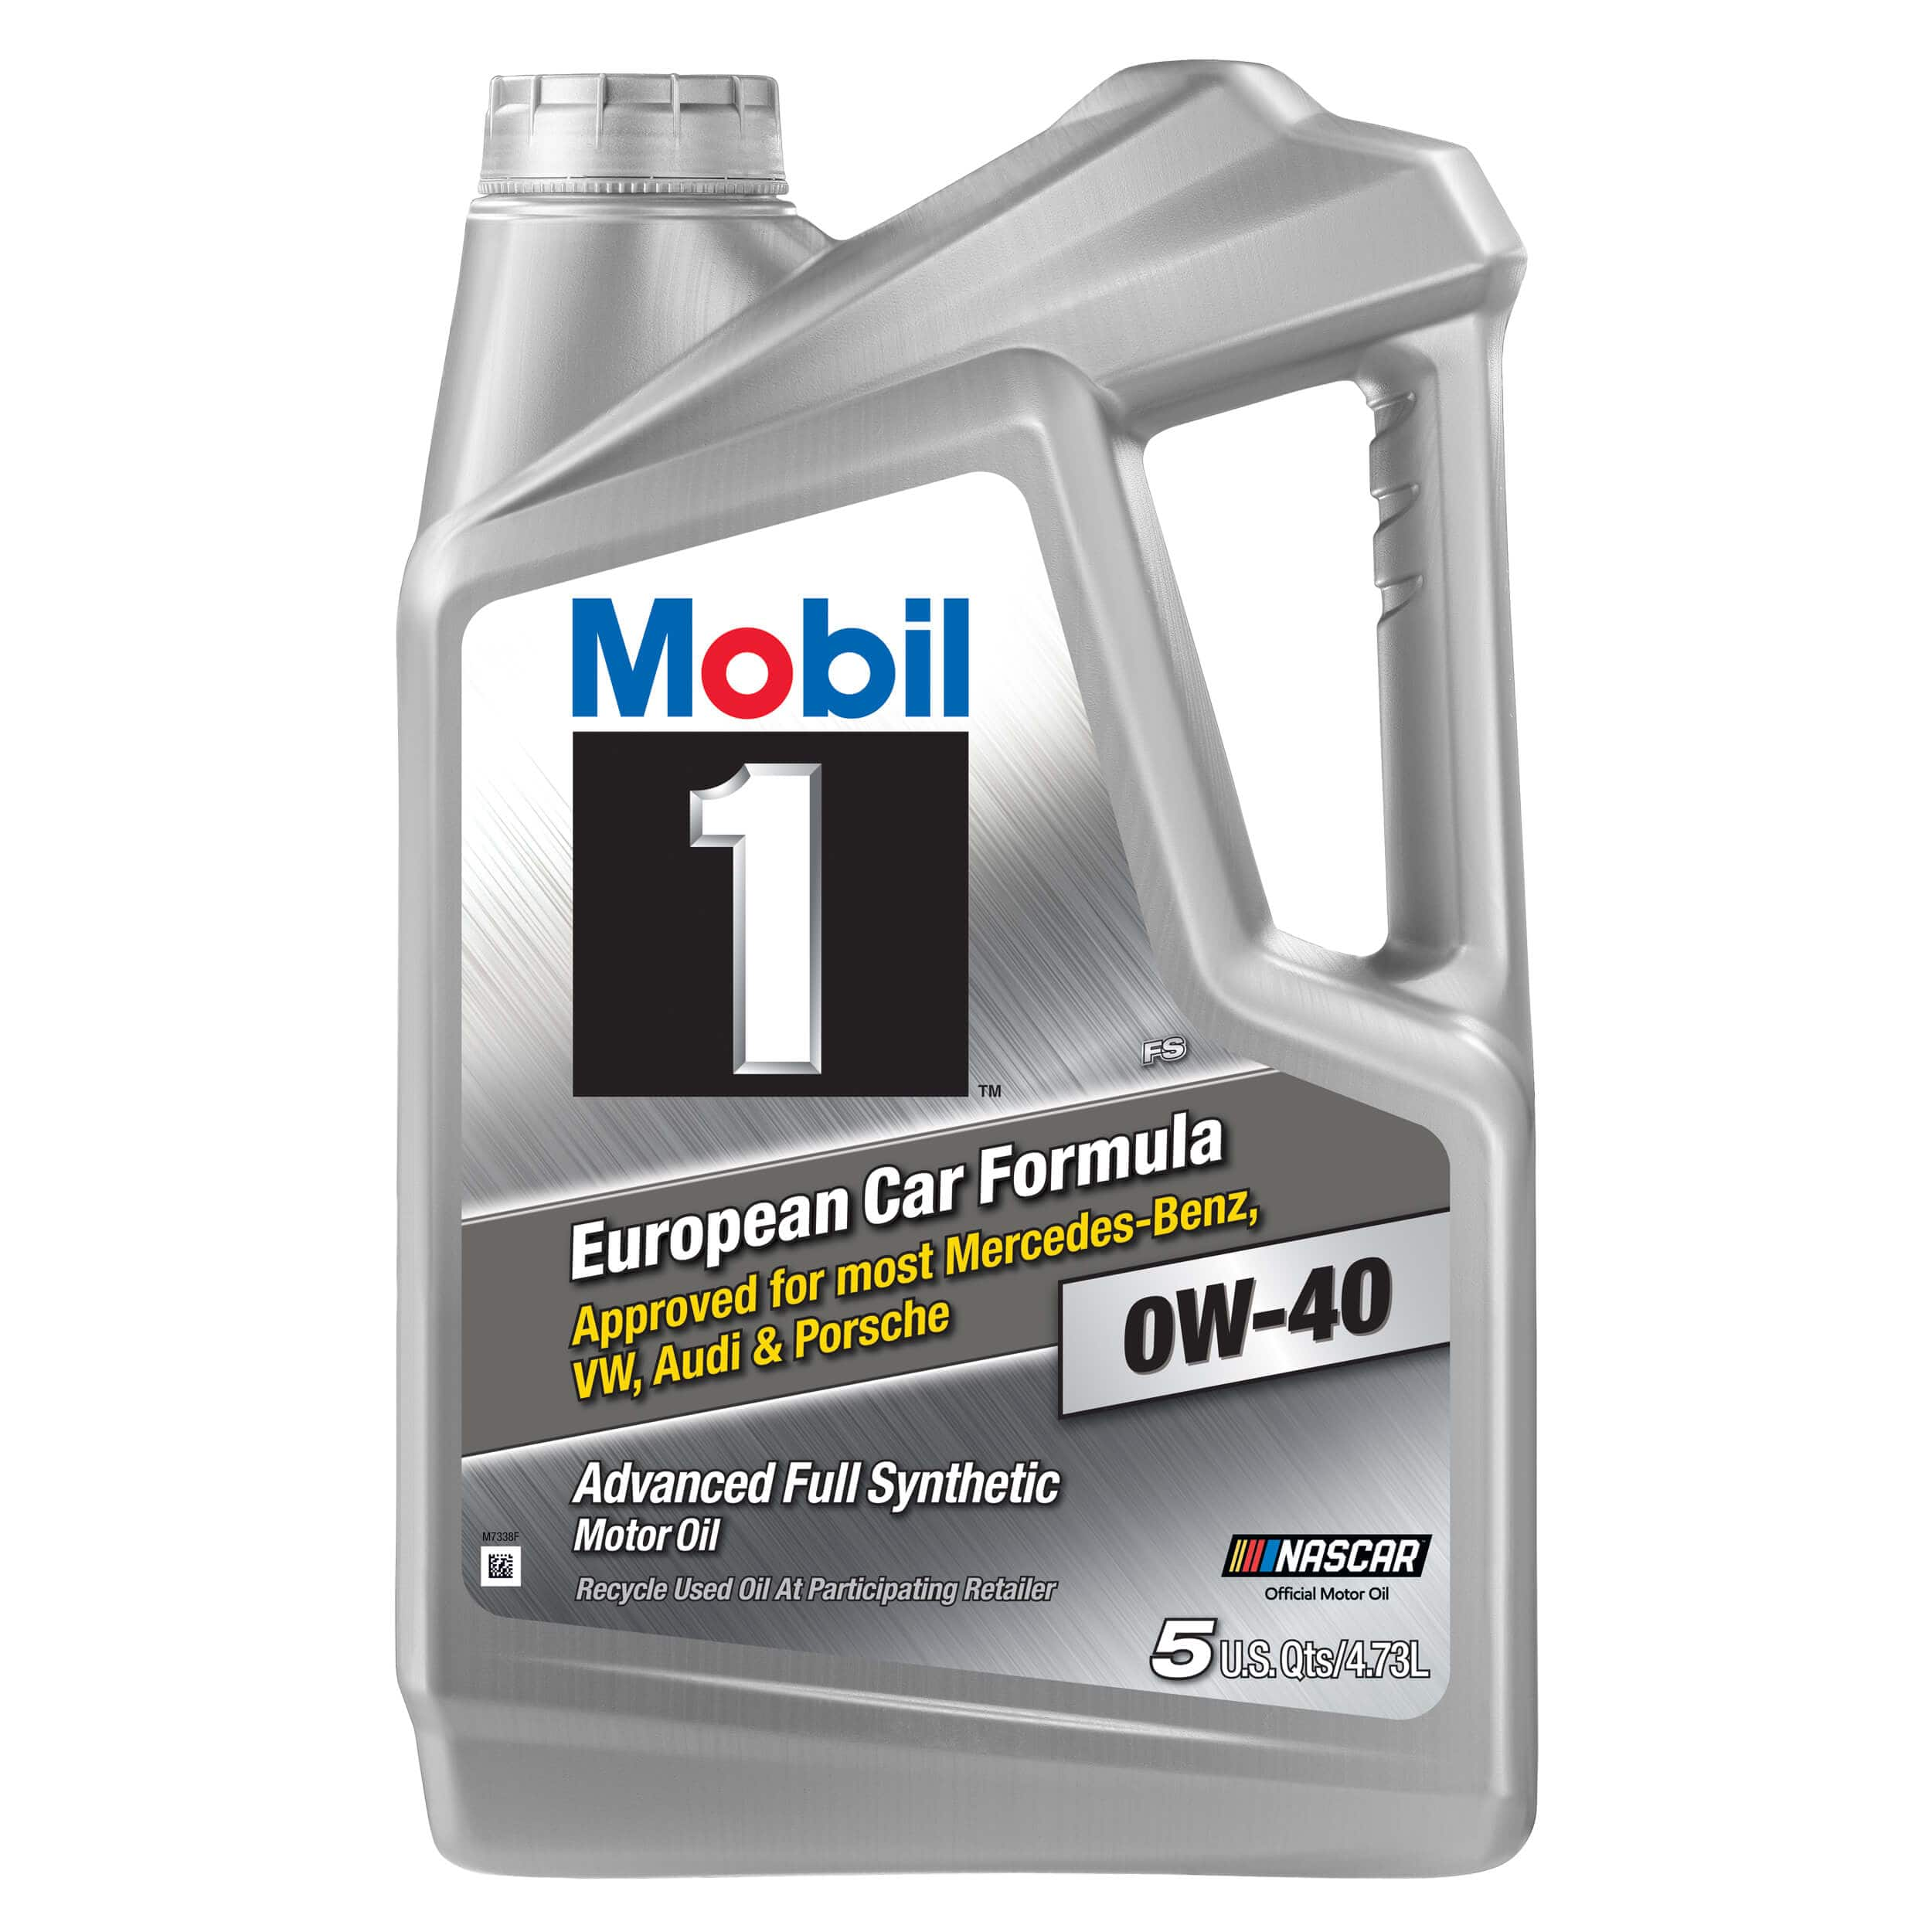 Mobil 1 Price drop (5 qt) also Mobil 1 oil  filters-no rebate required